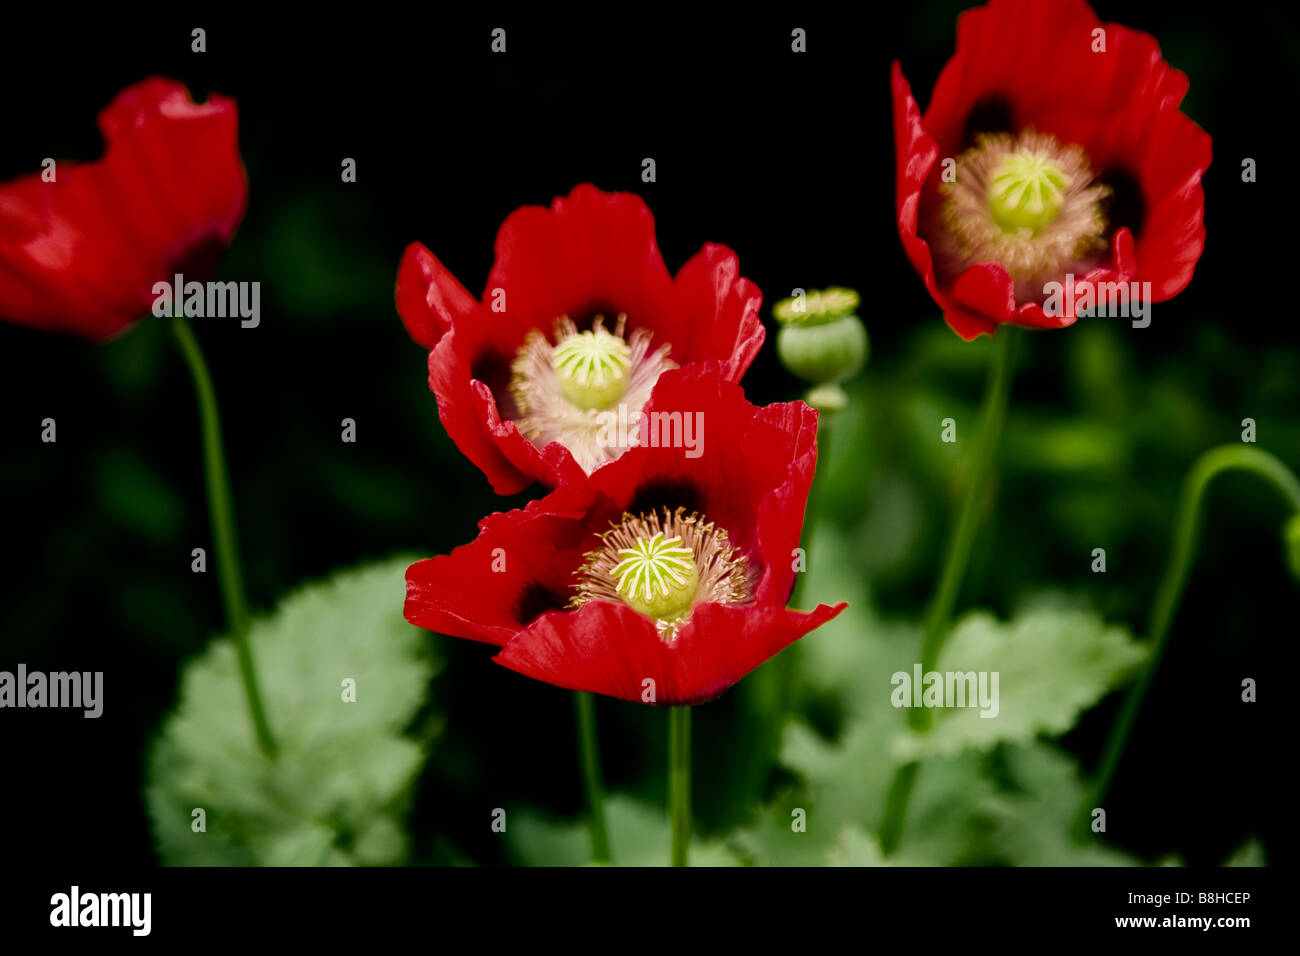 Red wild poppy Latin name: papaver rhoeas - Stock Image